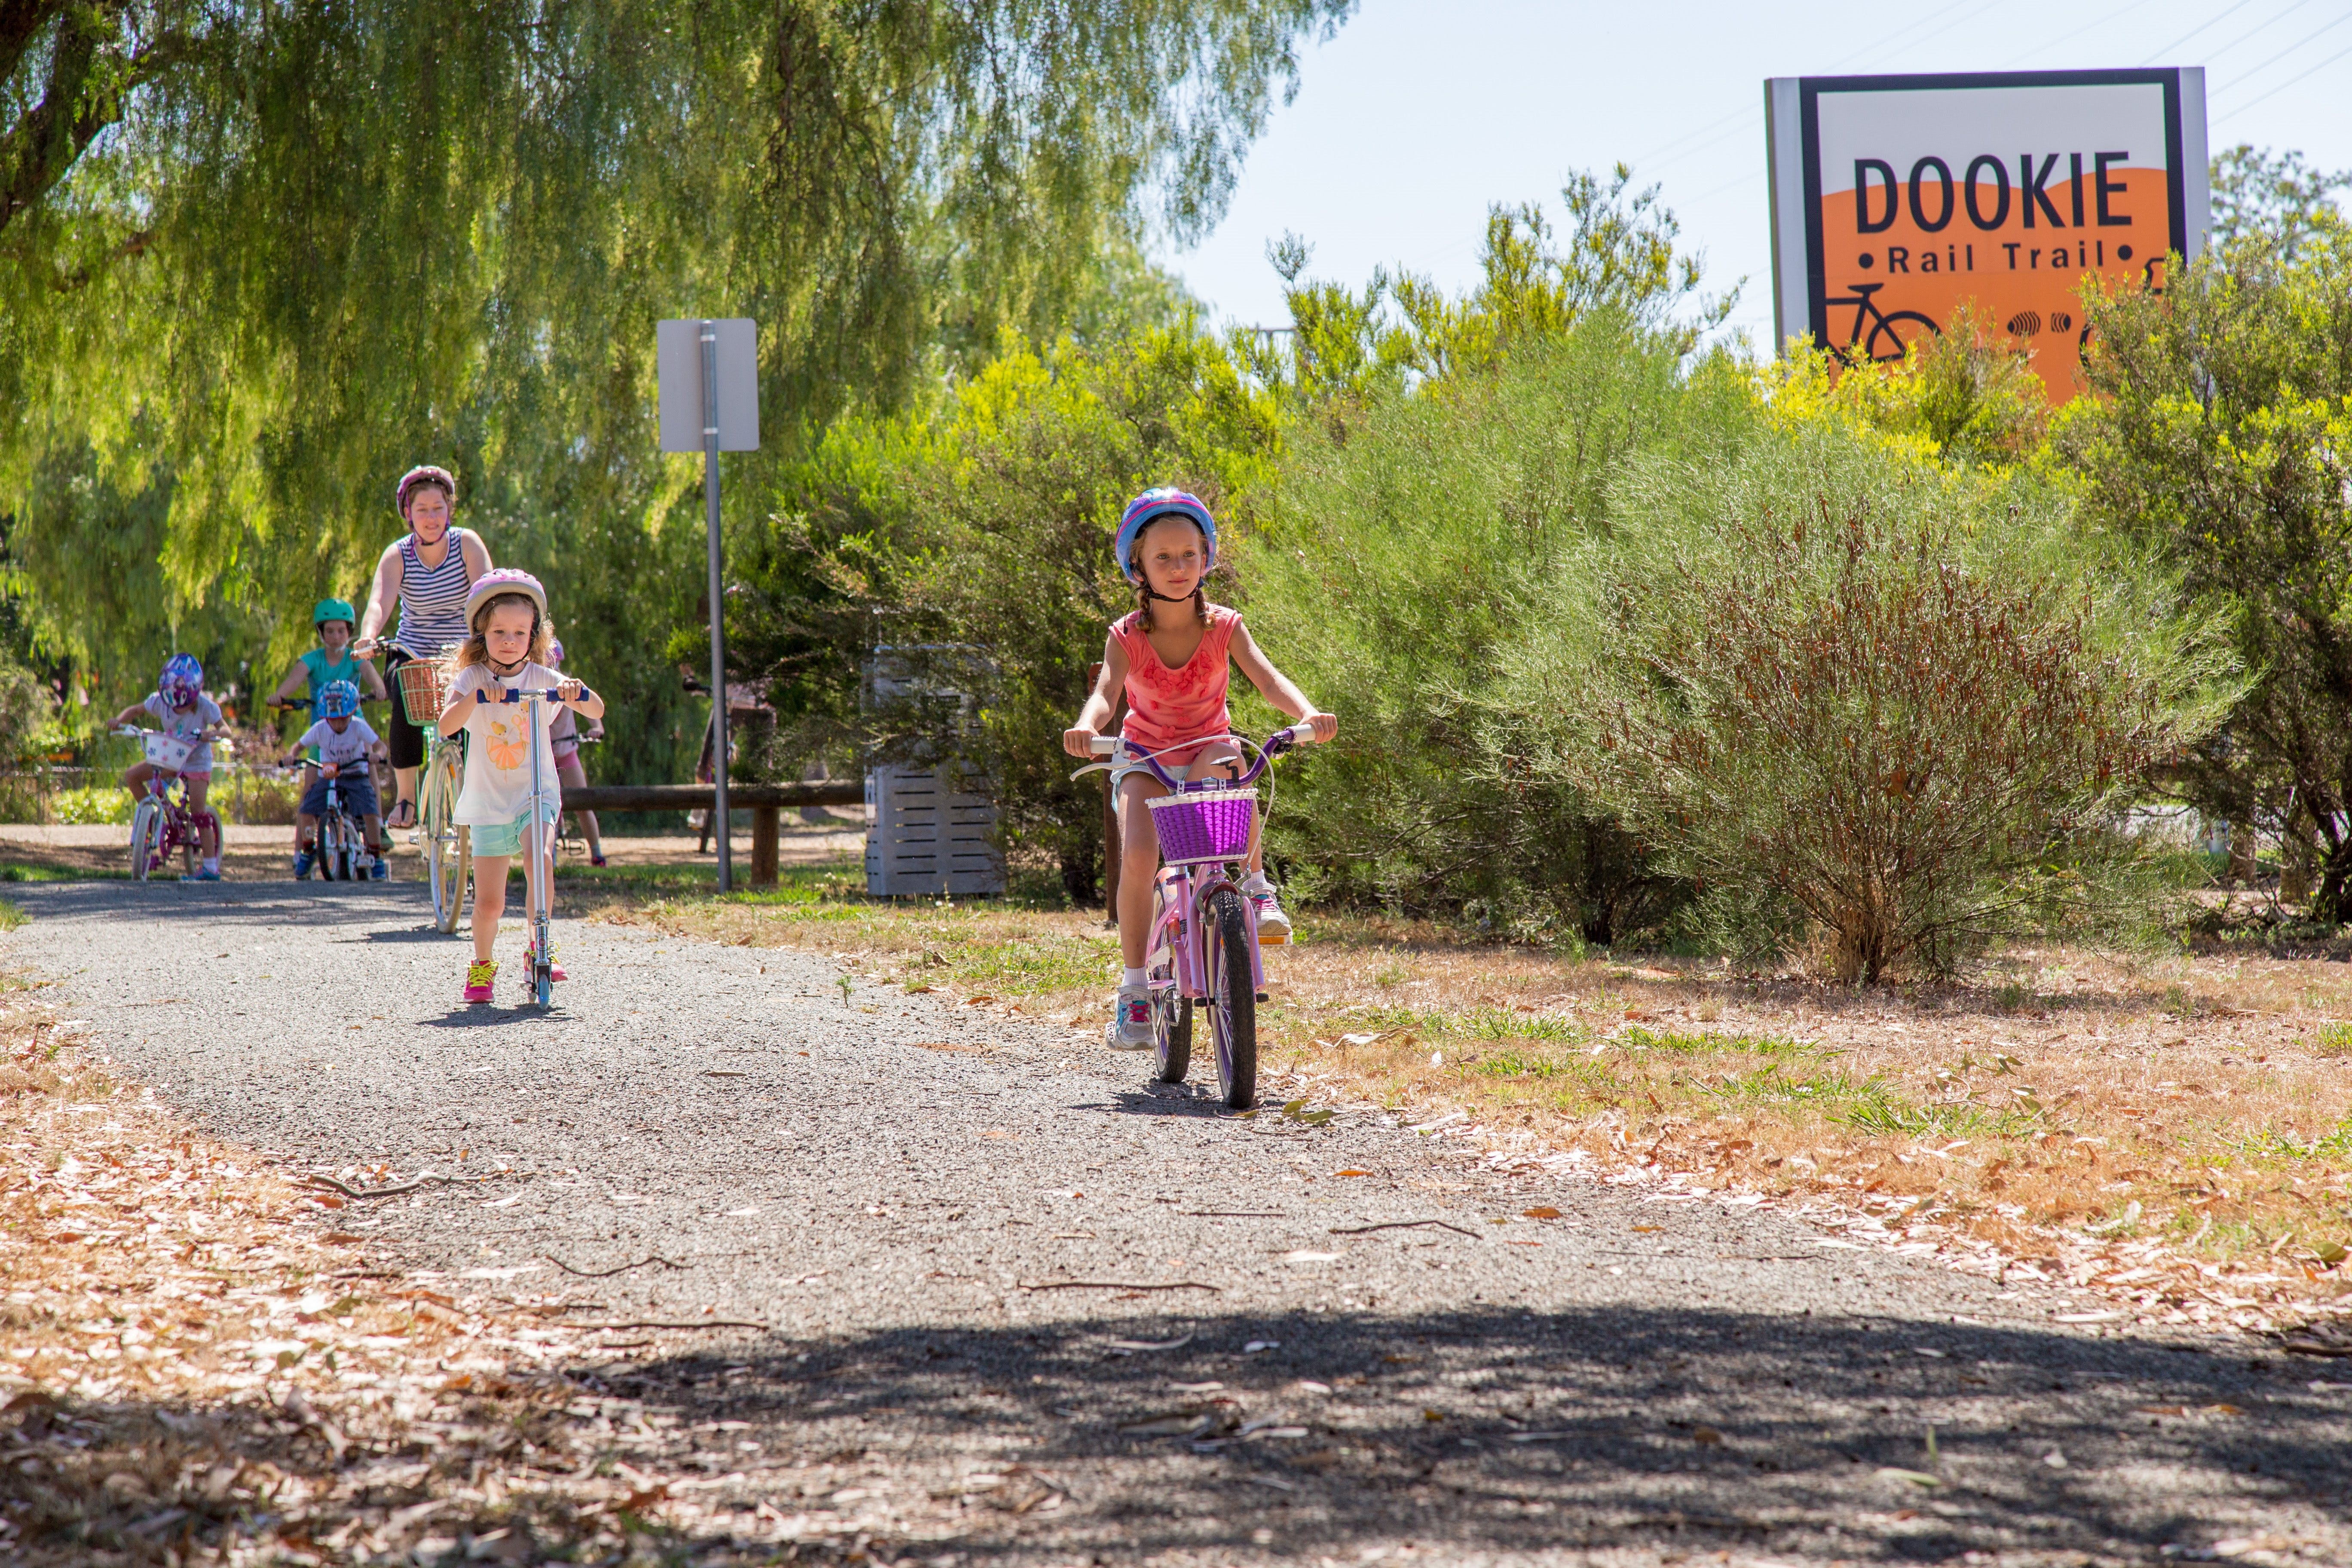 Dookie Rail Trail - SA Accommodation